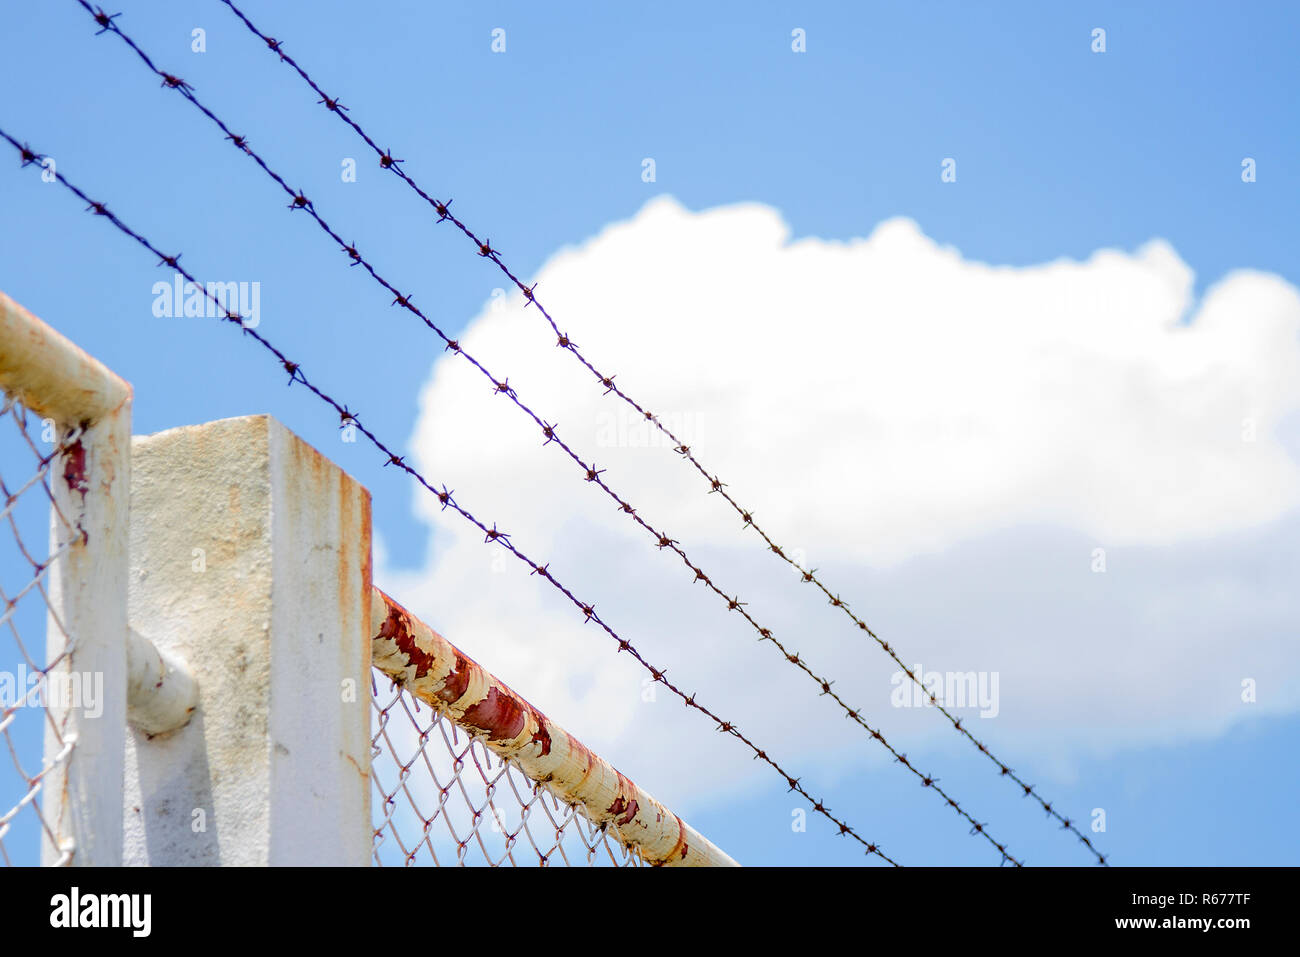 Barbed wire fence and white grating fence With blue sky Stock Photo